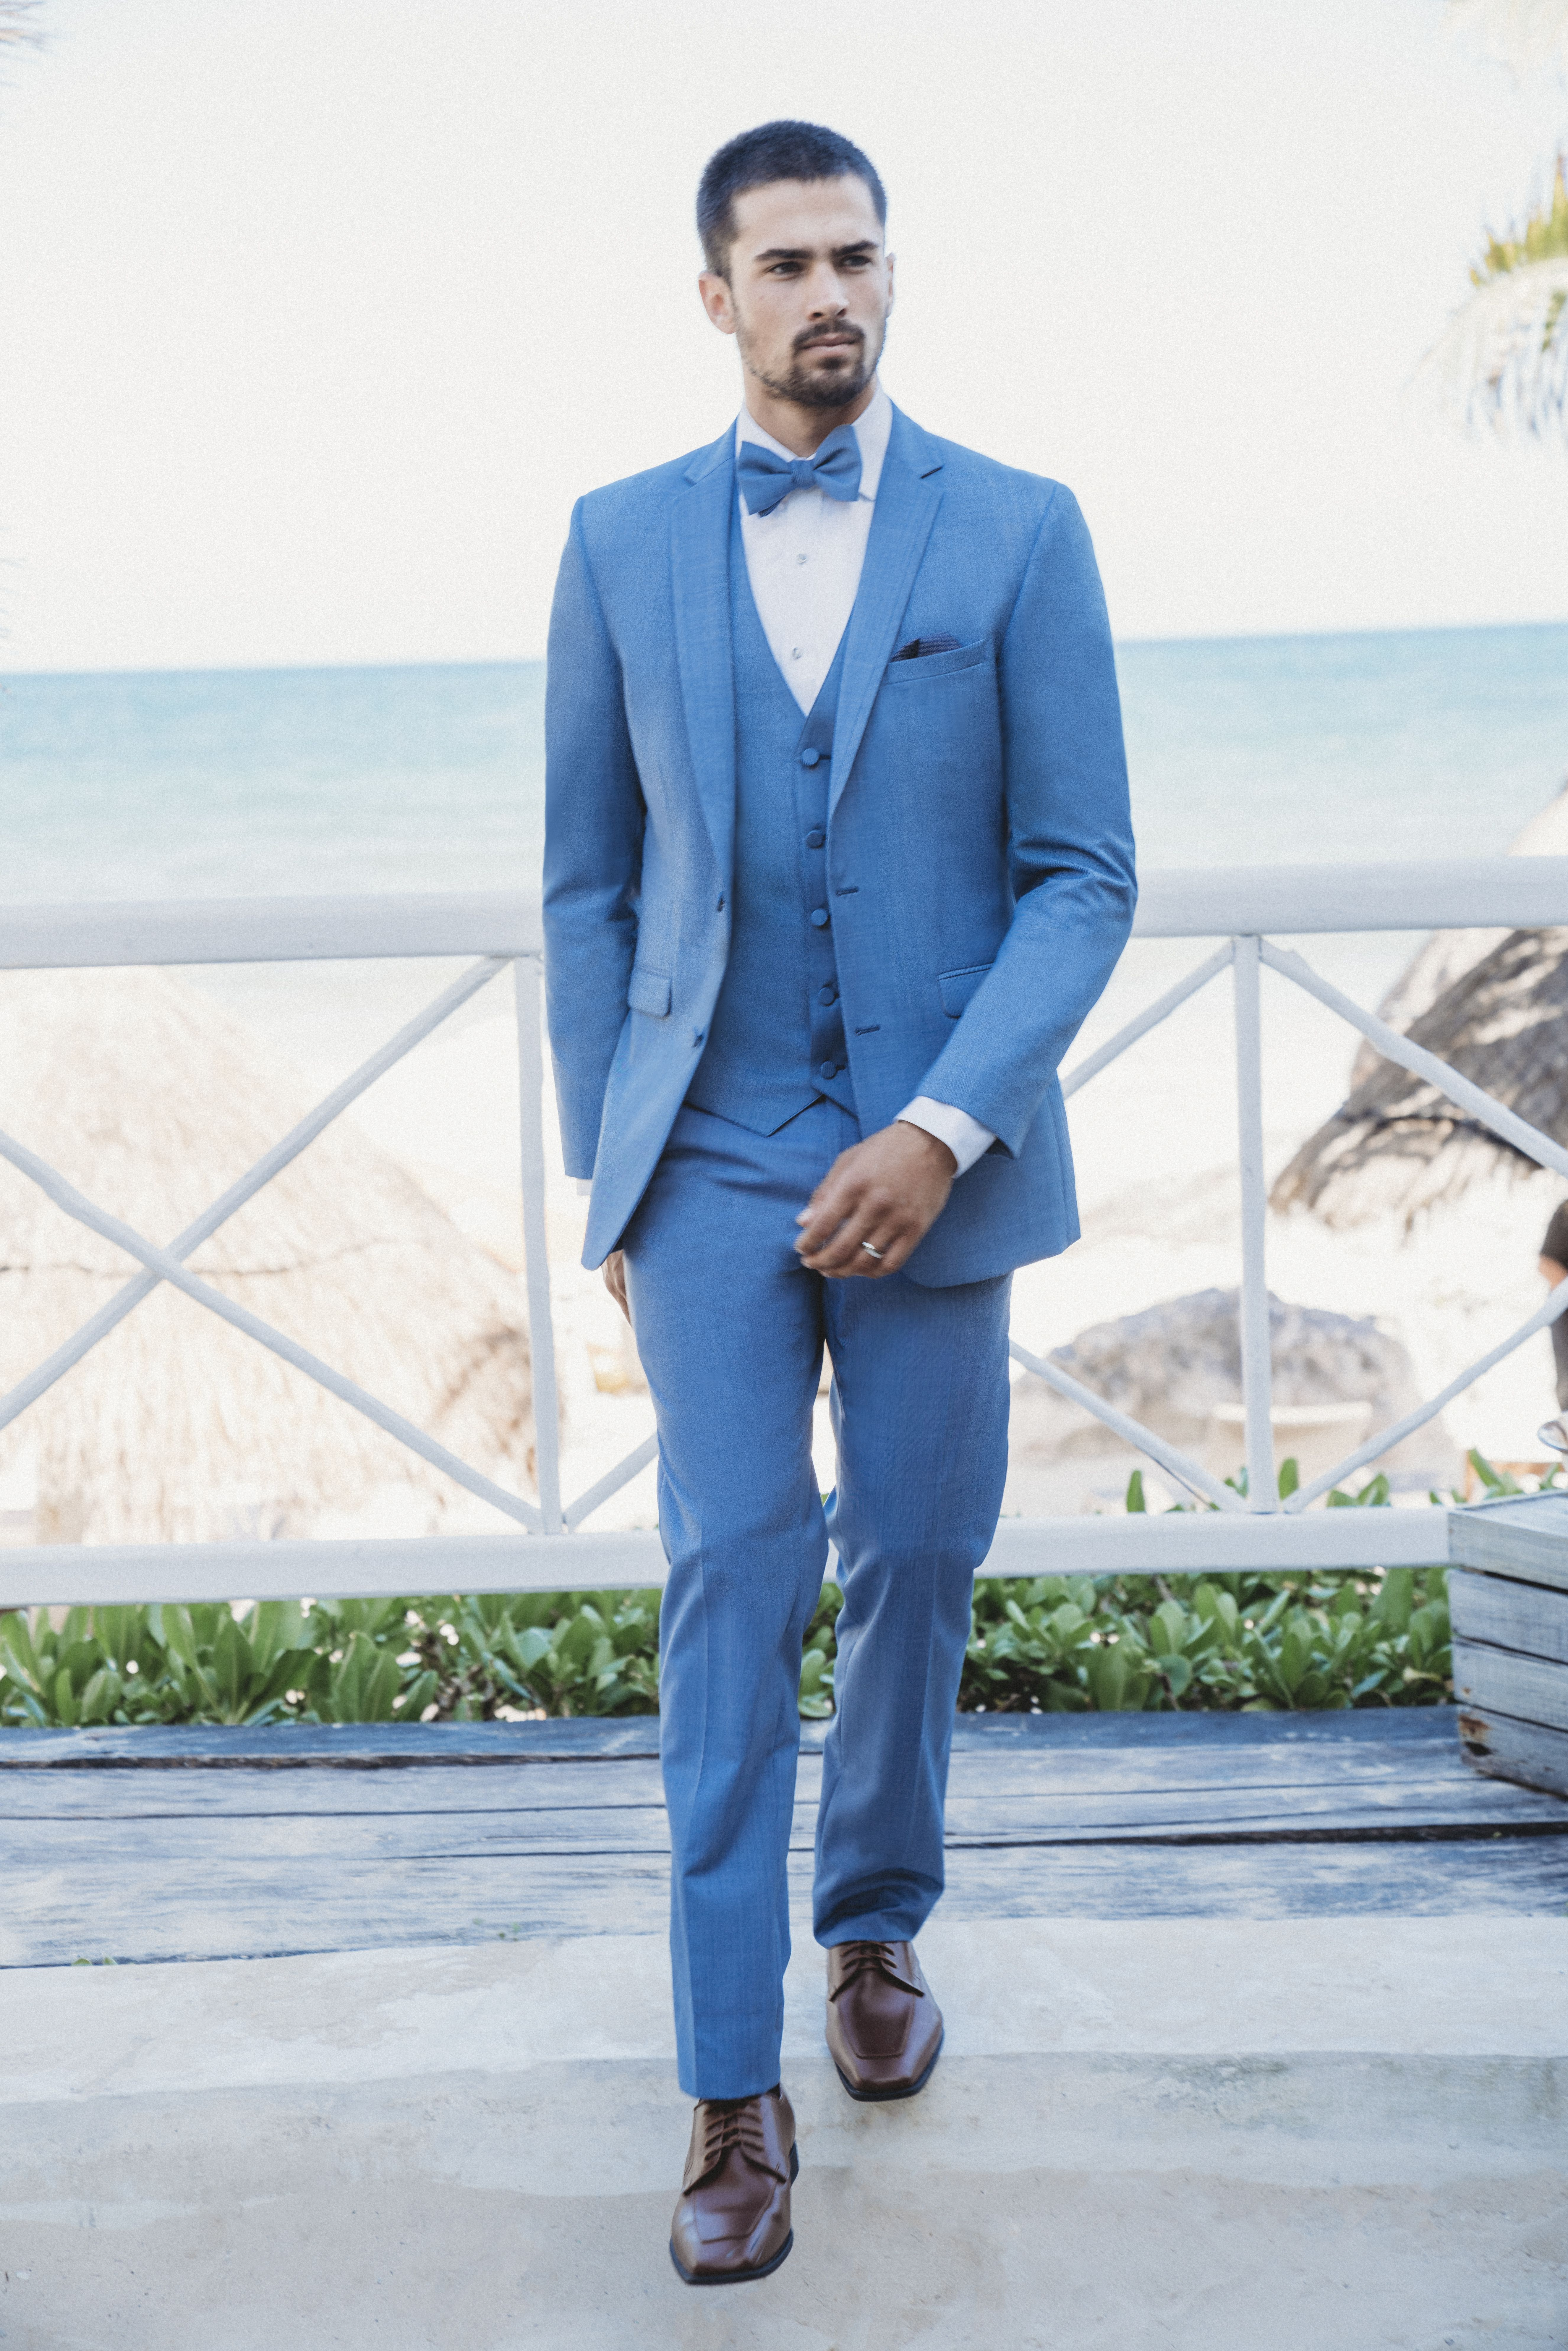 A fun light blue colored suit for your summer wedding! The